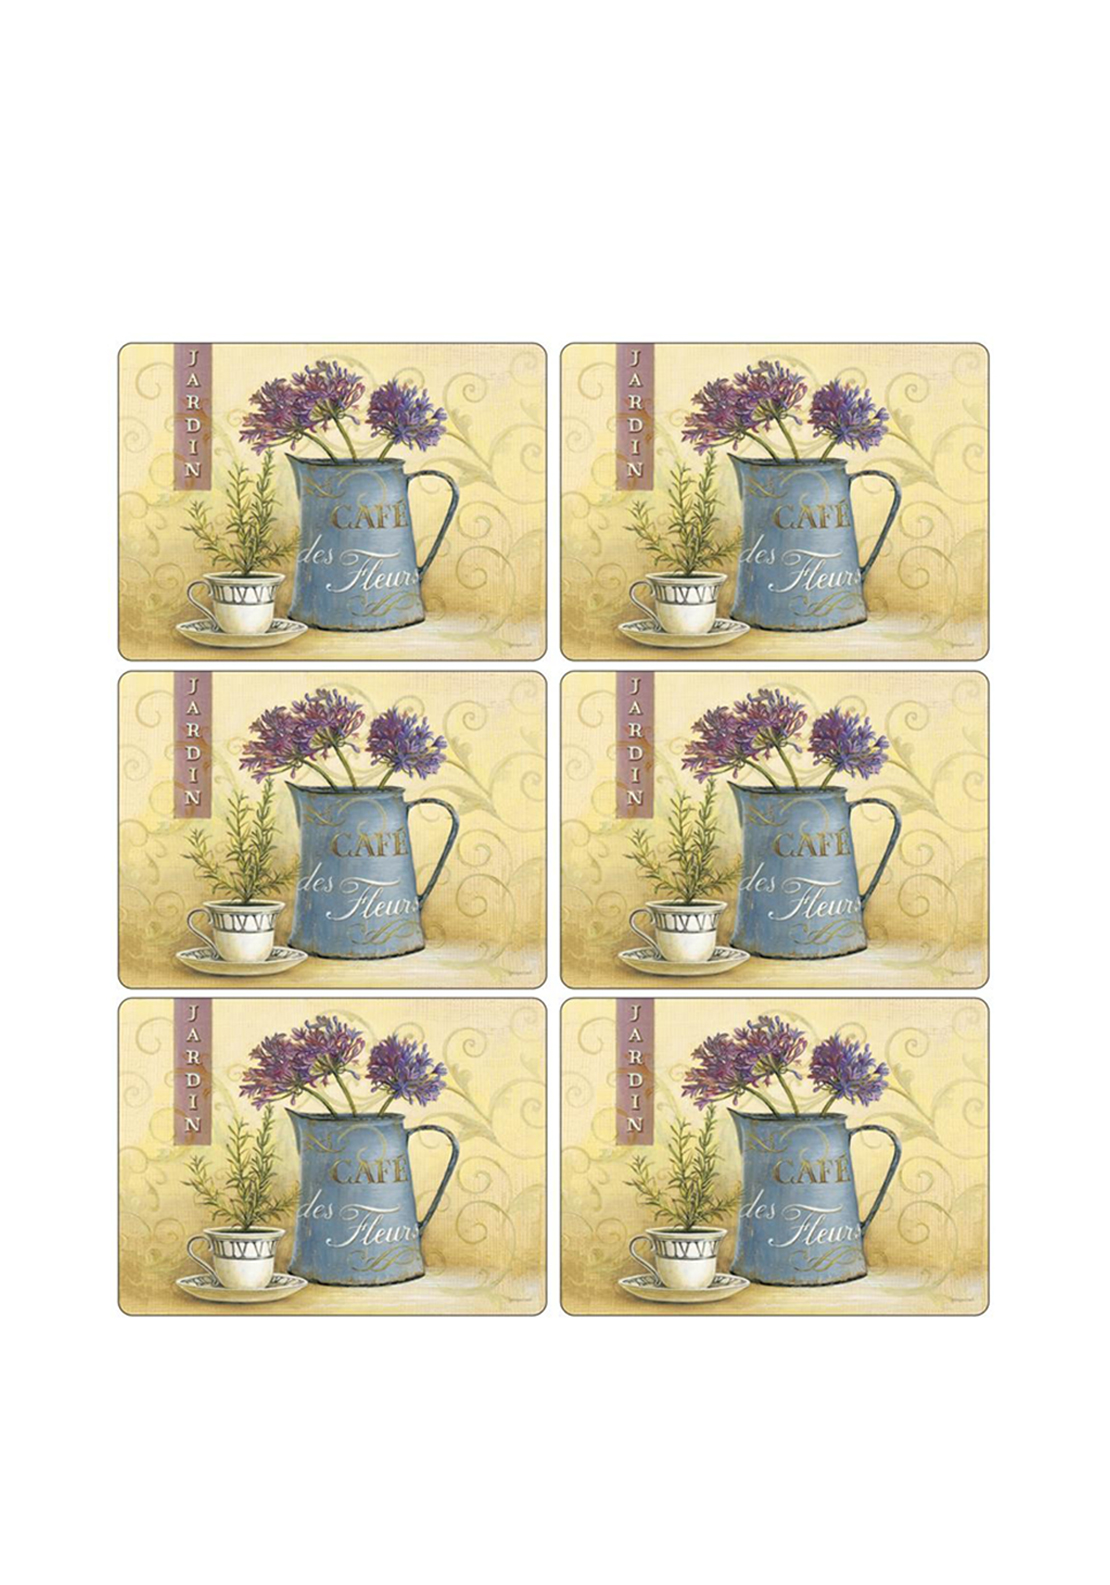 Pimpernel Cafe de Fleurs Set of 6 Placemats